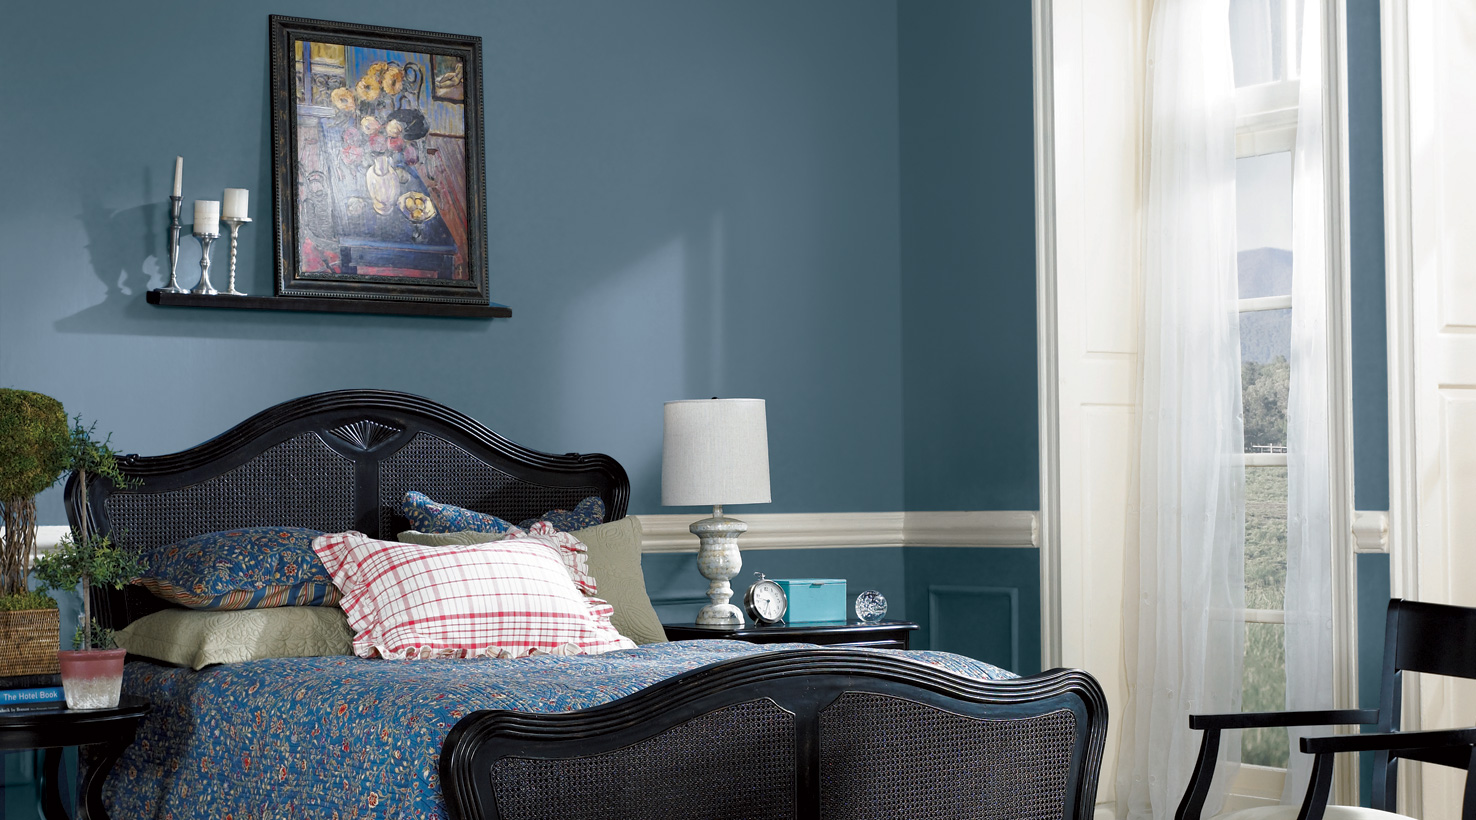 Bedroom Paint Color Ideas   Inspiration Gallery   Sherwin Williams Bedroom